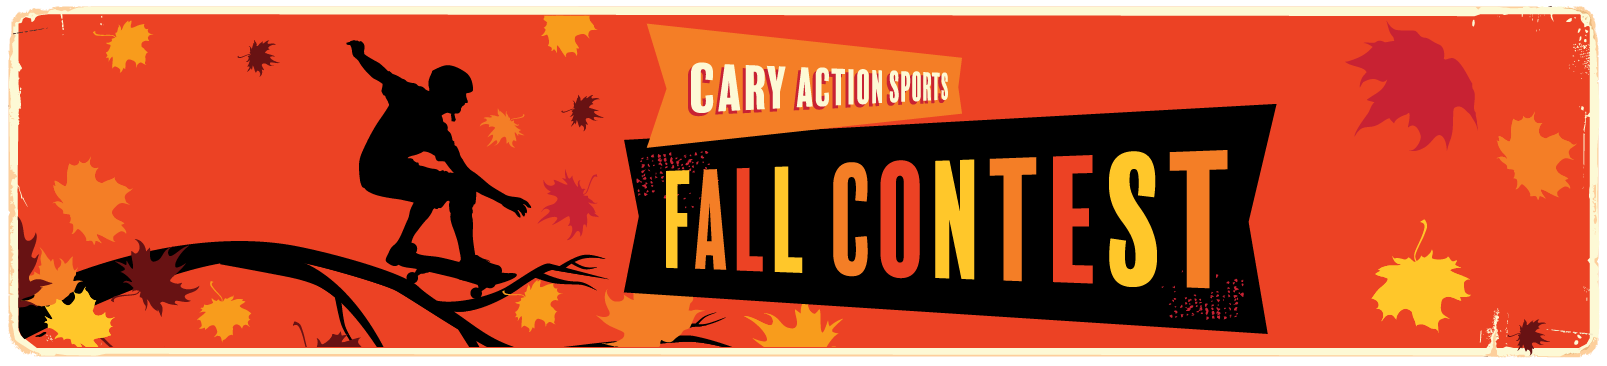 Cary Action Sports Fall Contest